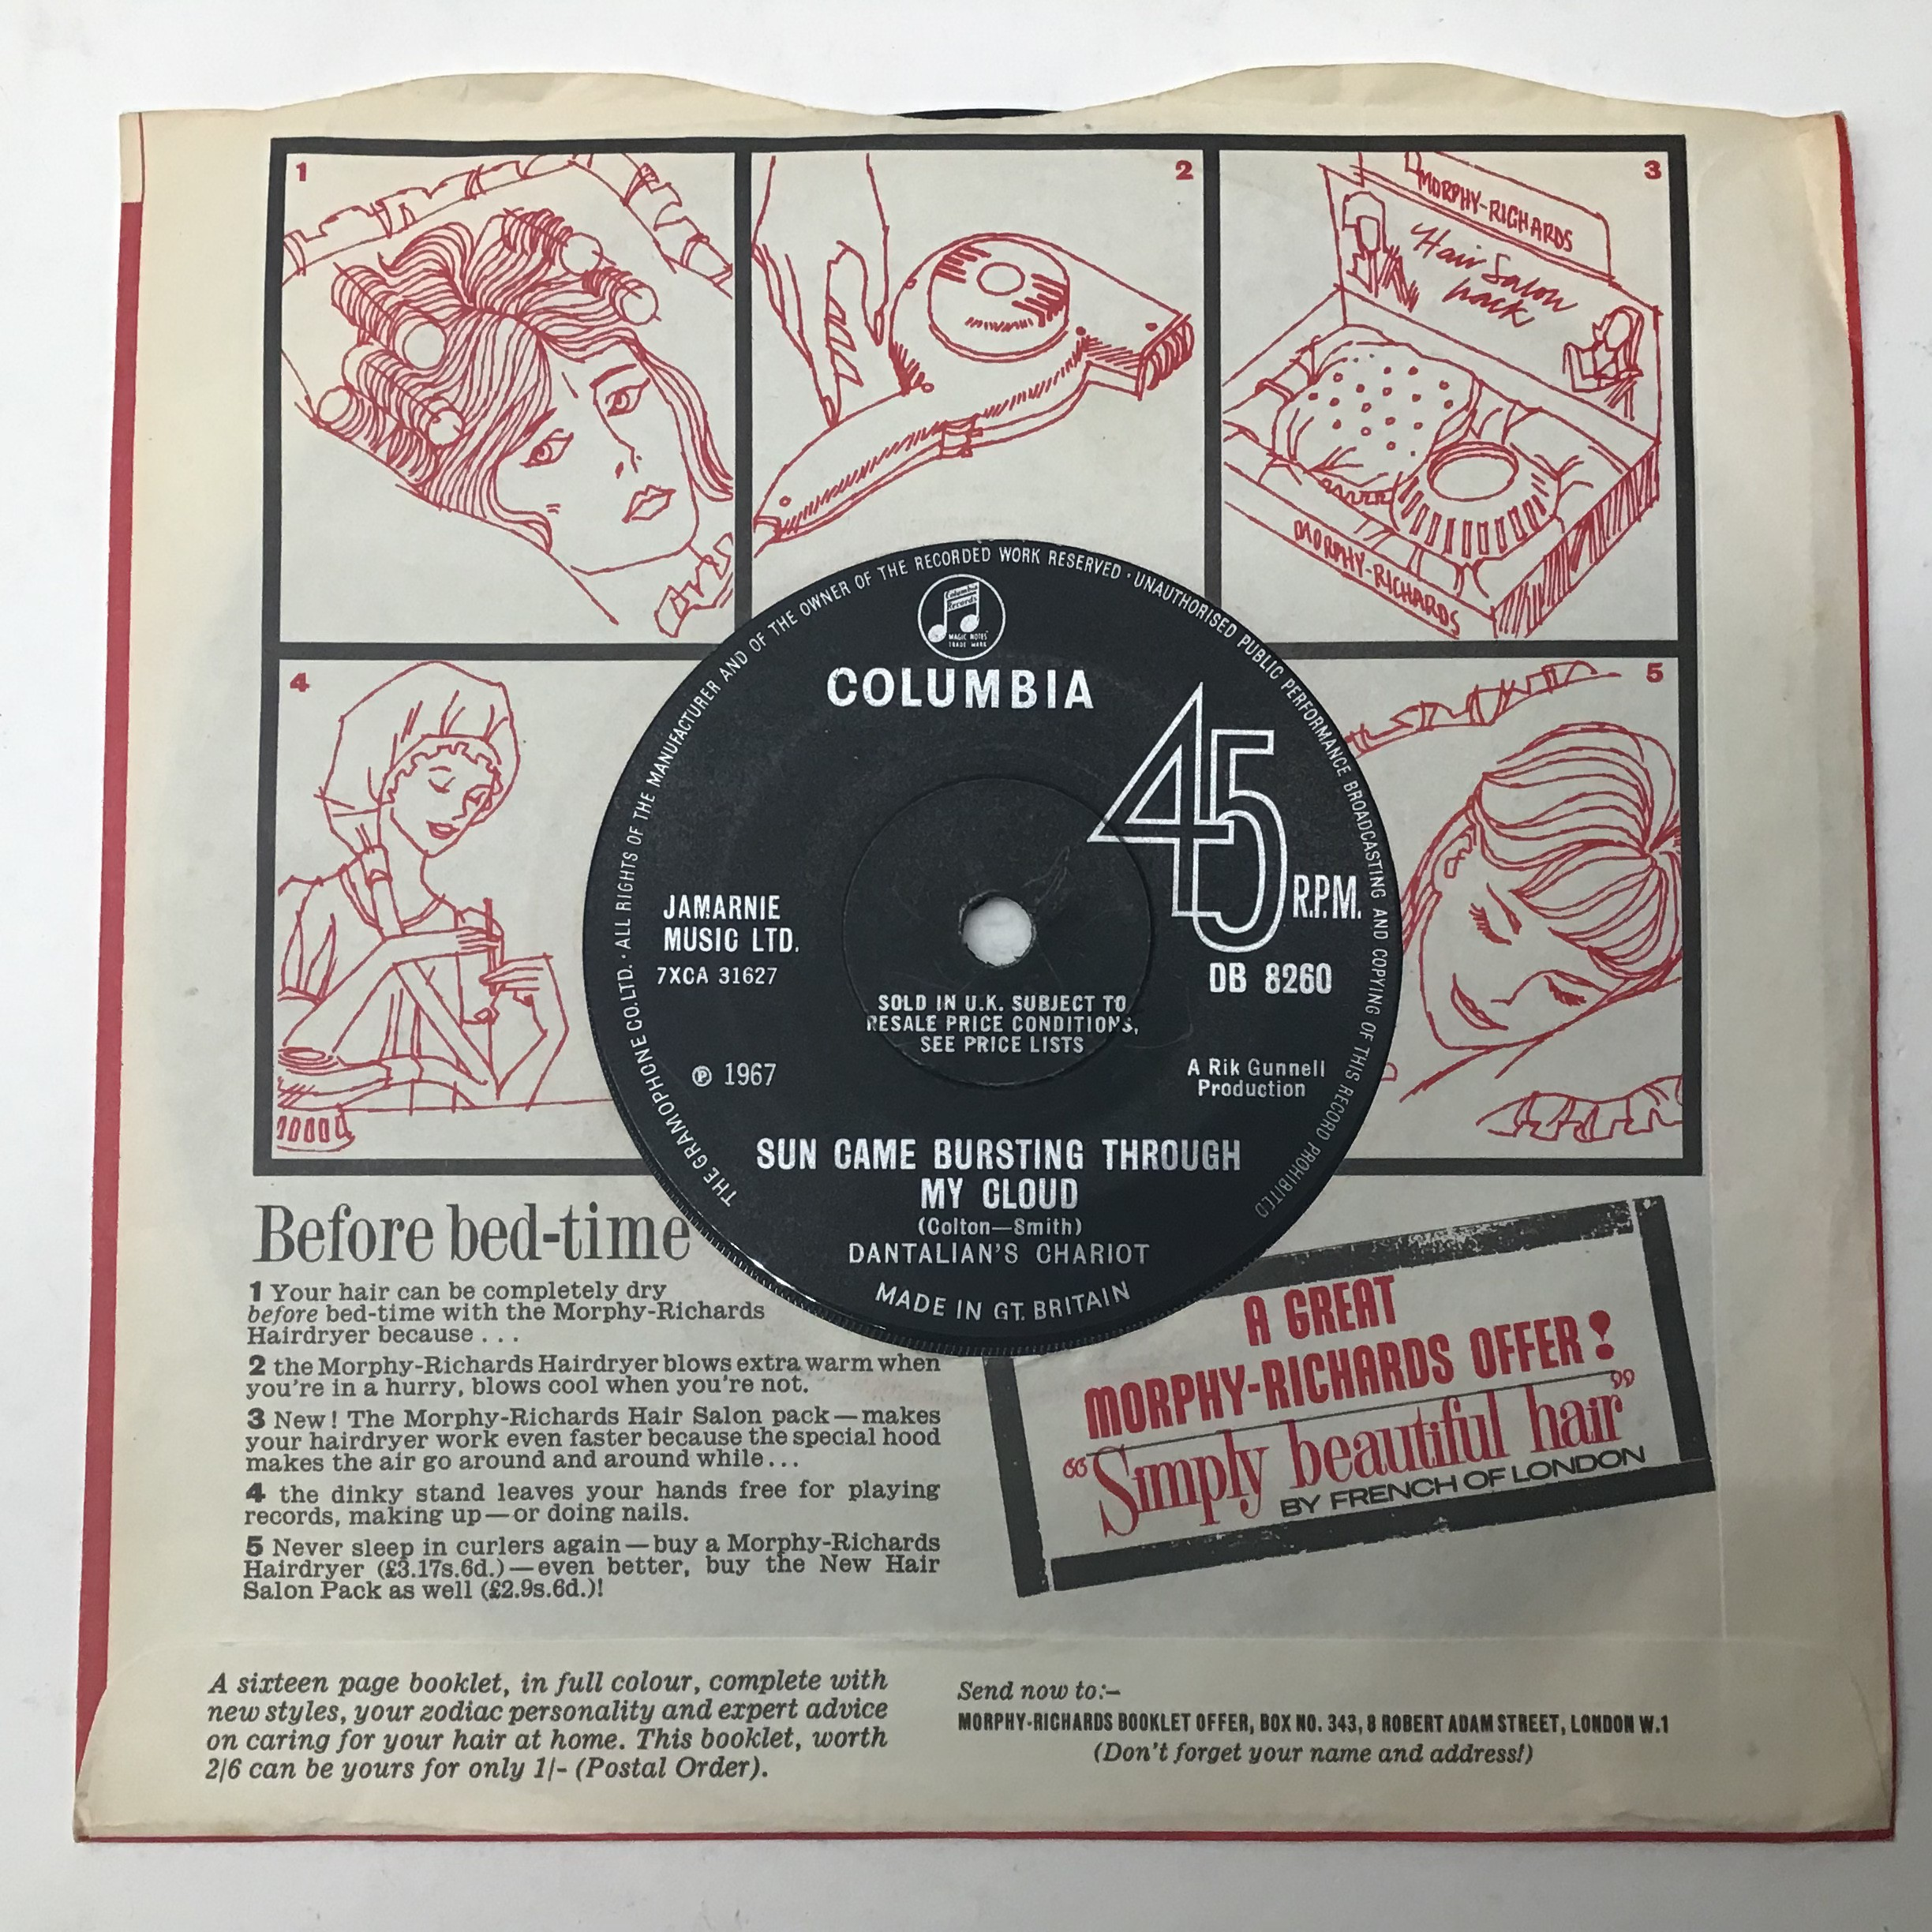 DANTALIAN'S CHARIOT 7? psych single vinyl record. ?The Madman Running Through The Fields? on - Image 2 of 4